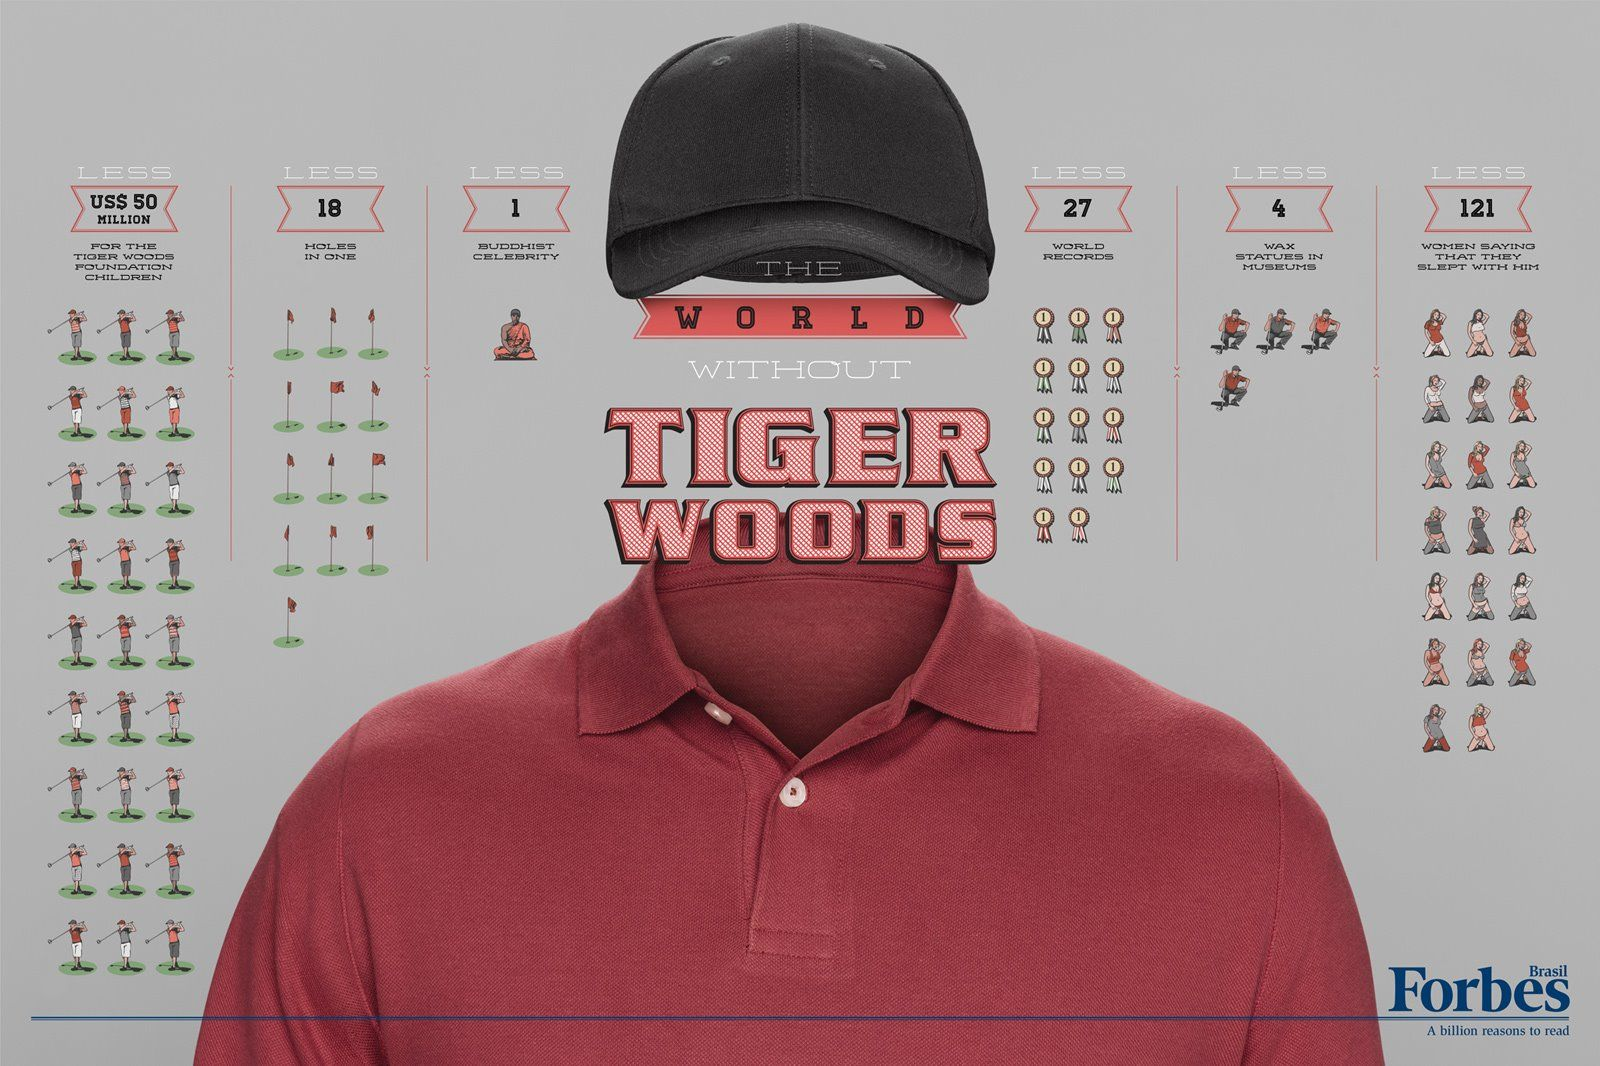 The world without Tiger Woods